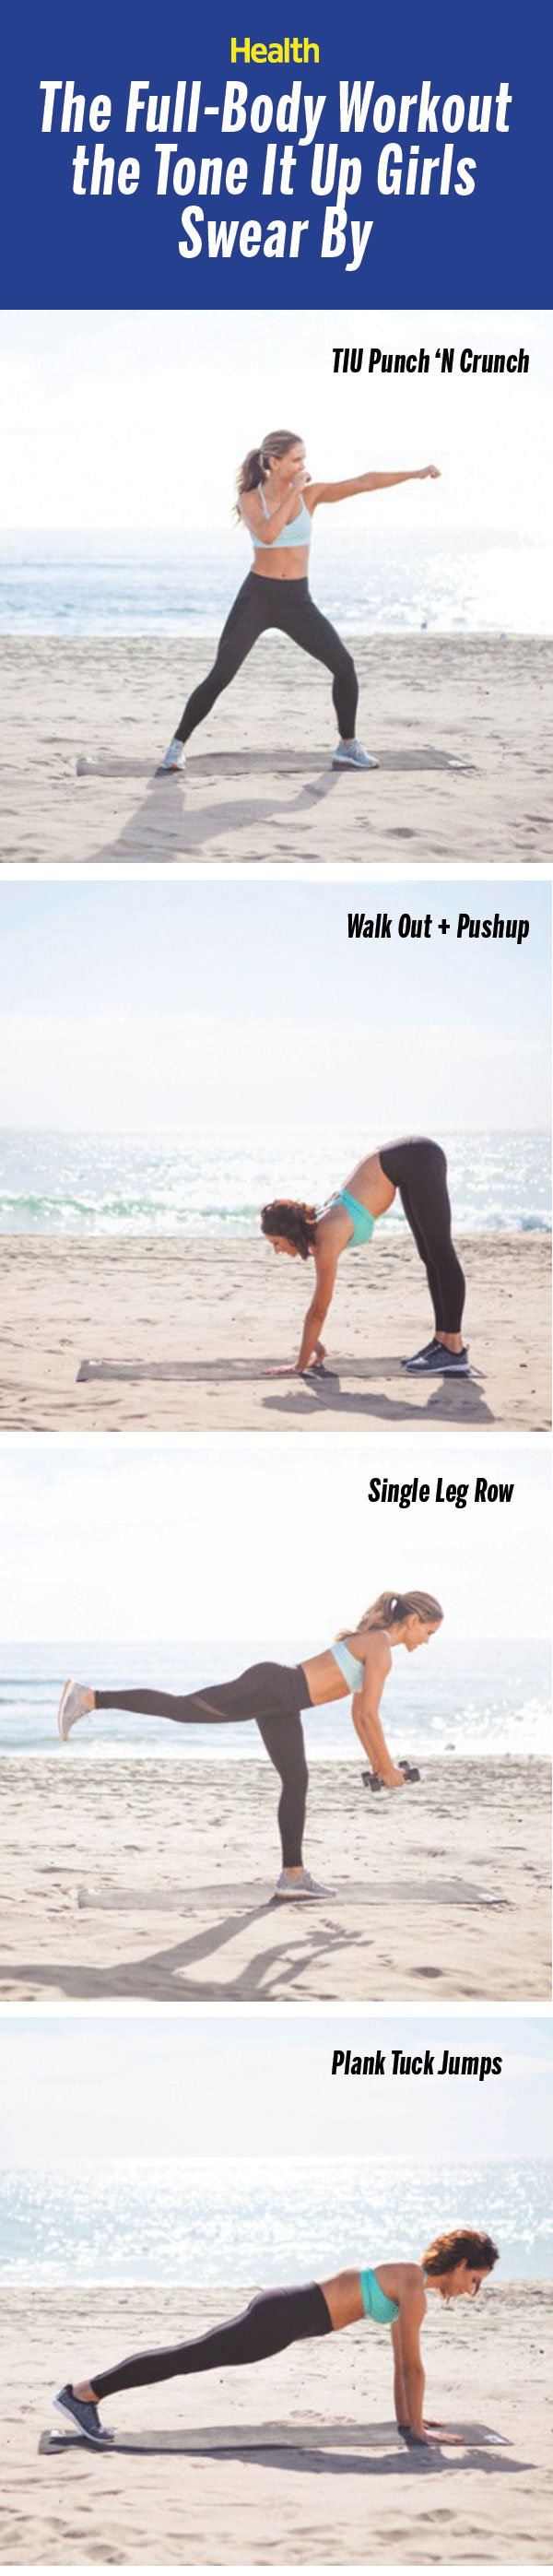 The Best Full-Body Workout From the Tone It Up Girls - Health